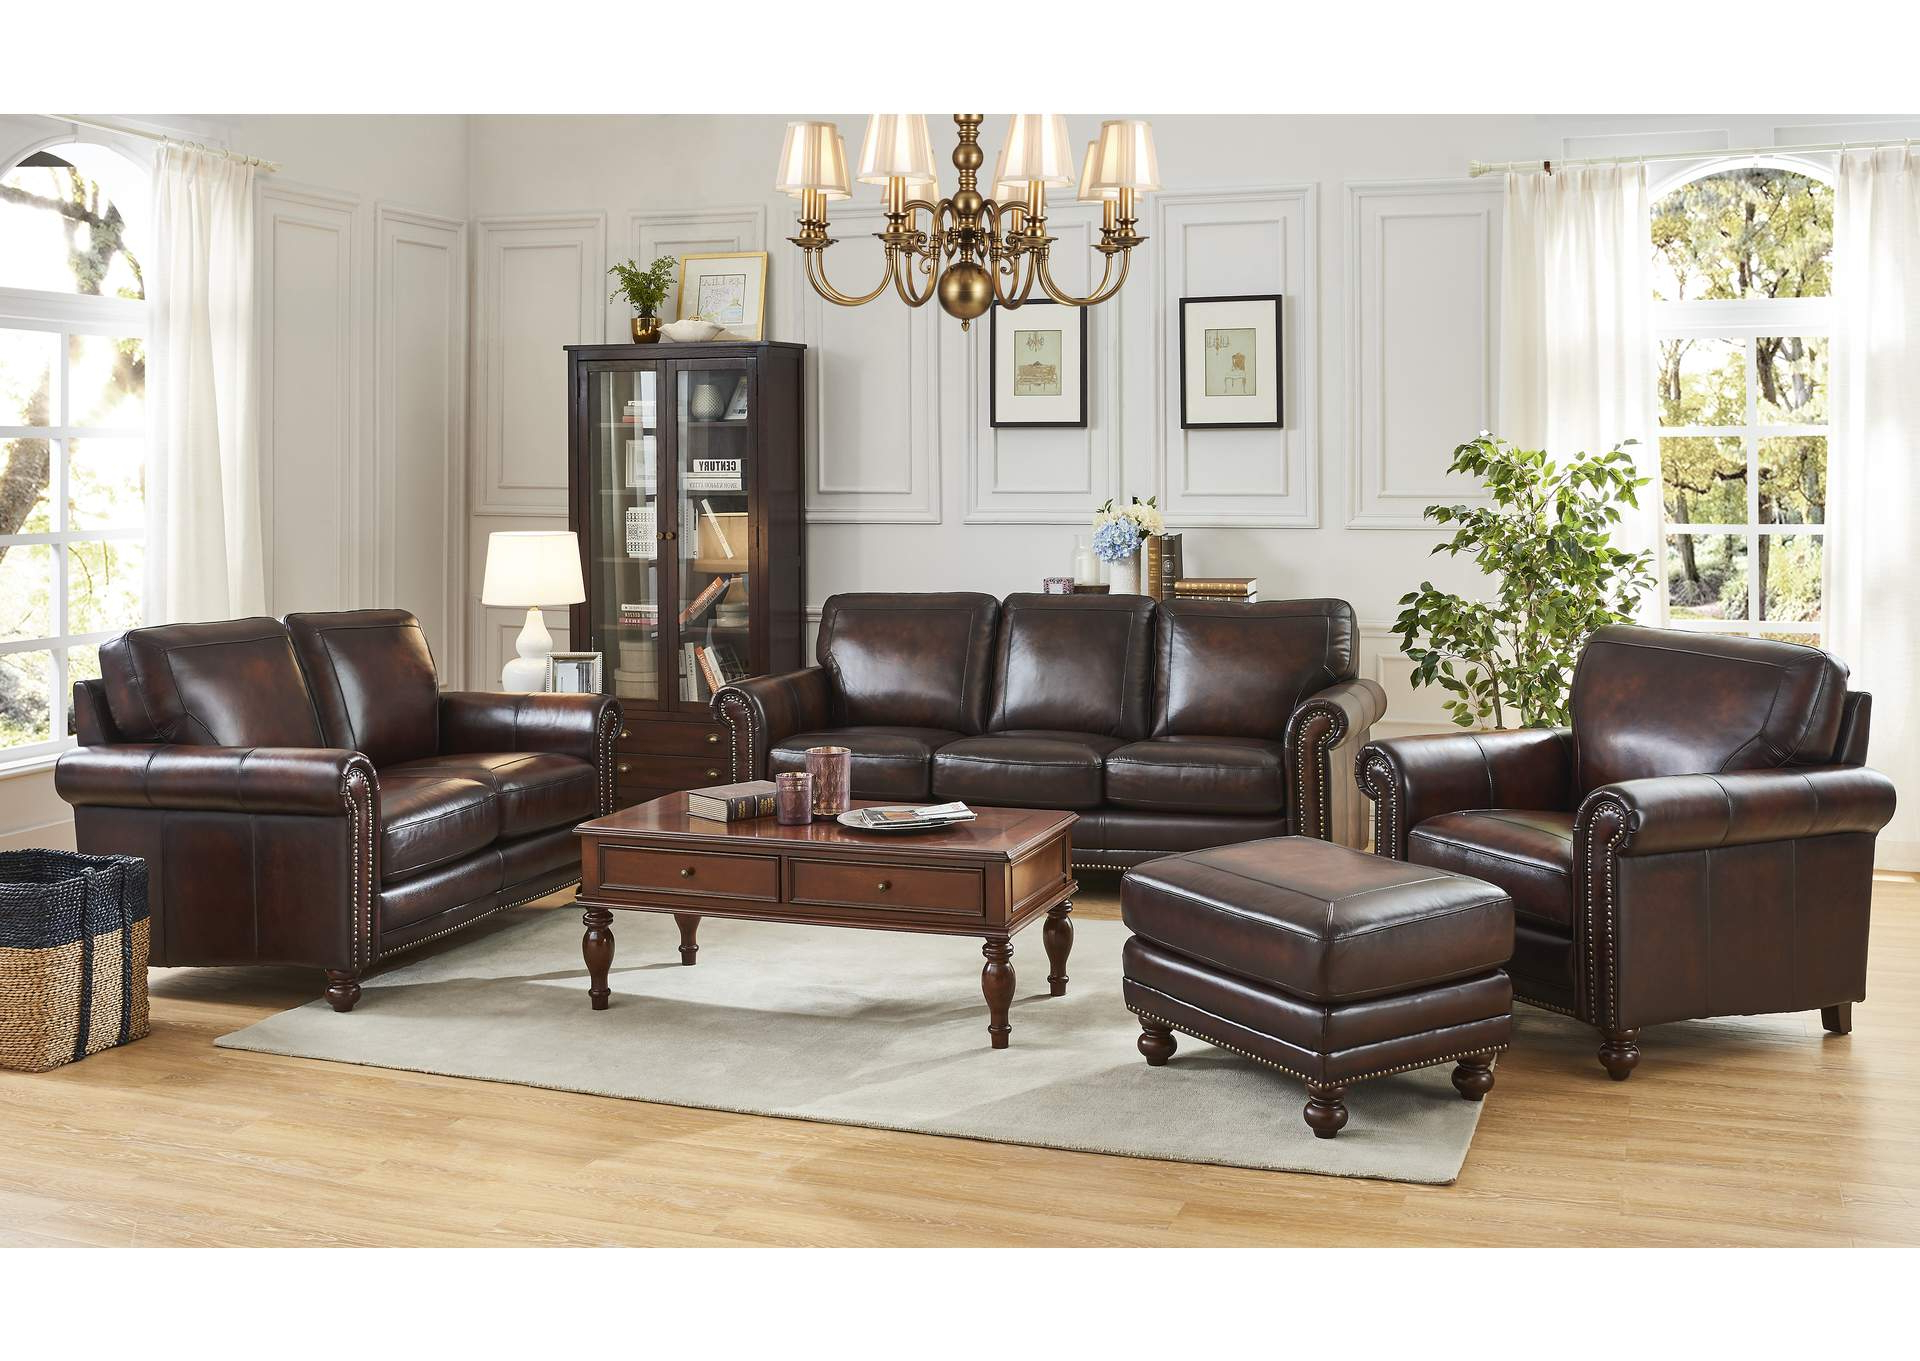 Hampton L501M Brown 3 Piece Sofa Set Furniture Outlet In Most Recently Released 3Pc Polyfiber Sectional Sofas With Nail Head Trim Blue/Gray (View 22 of 25)